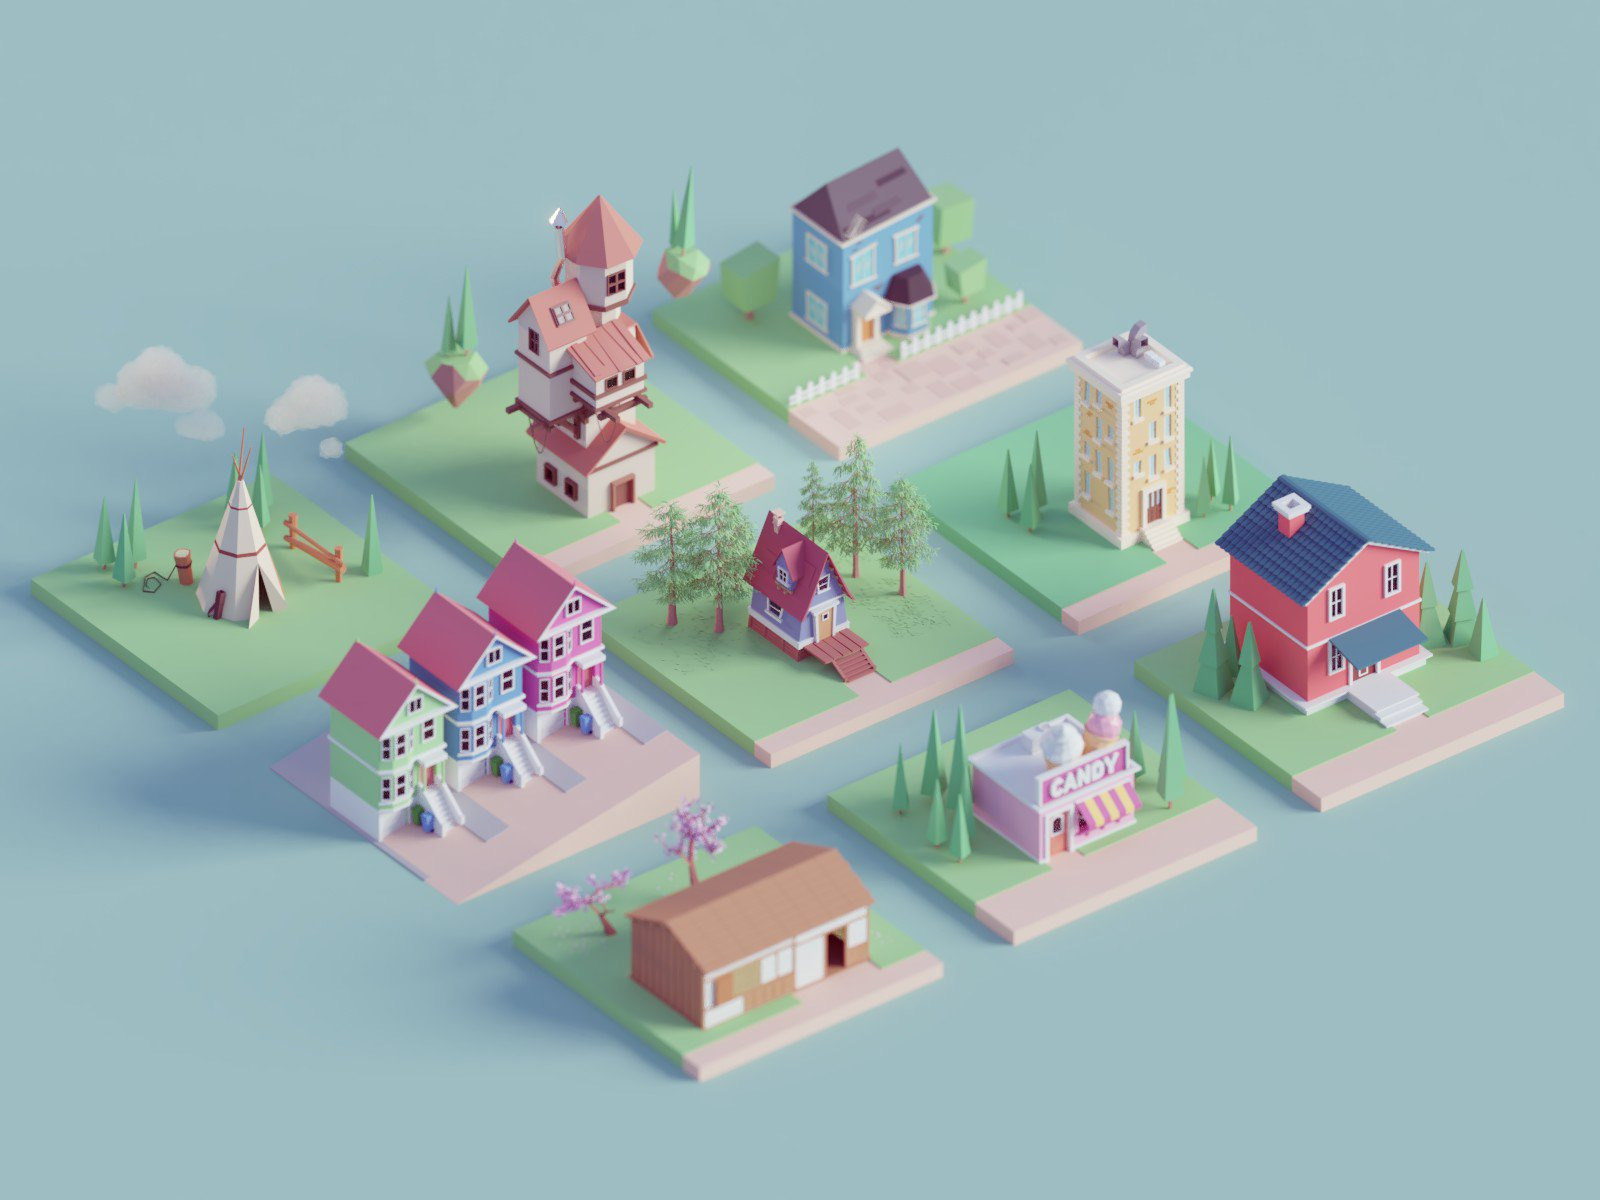 Mohamed Chahin, low-poly art